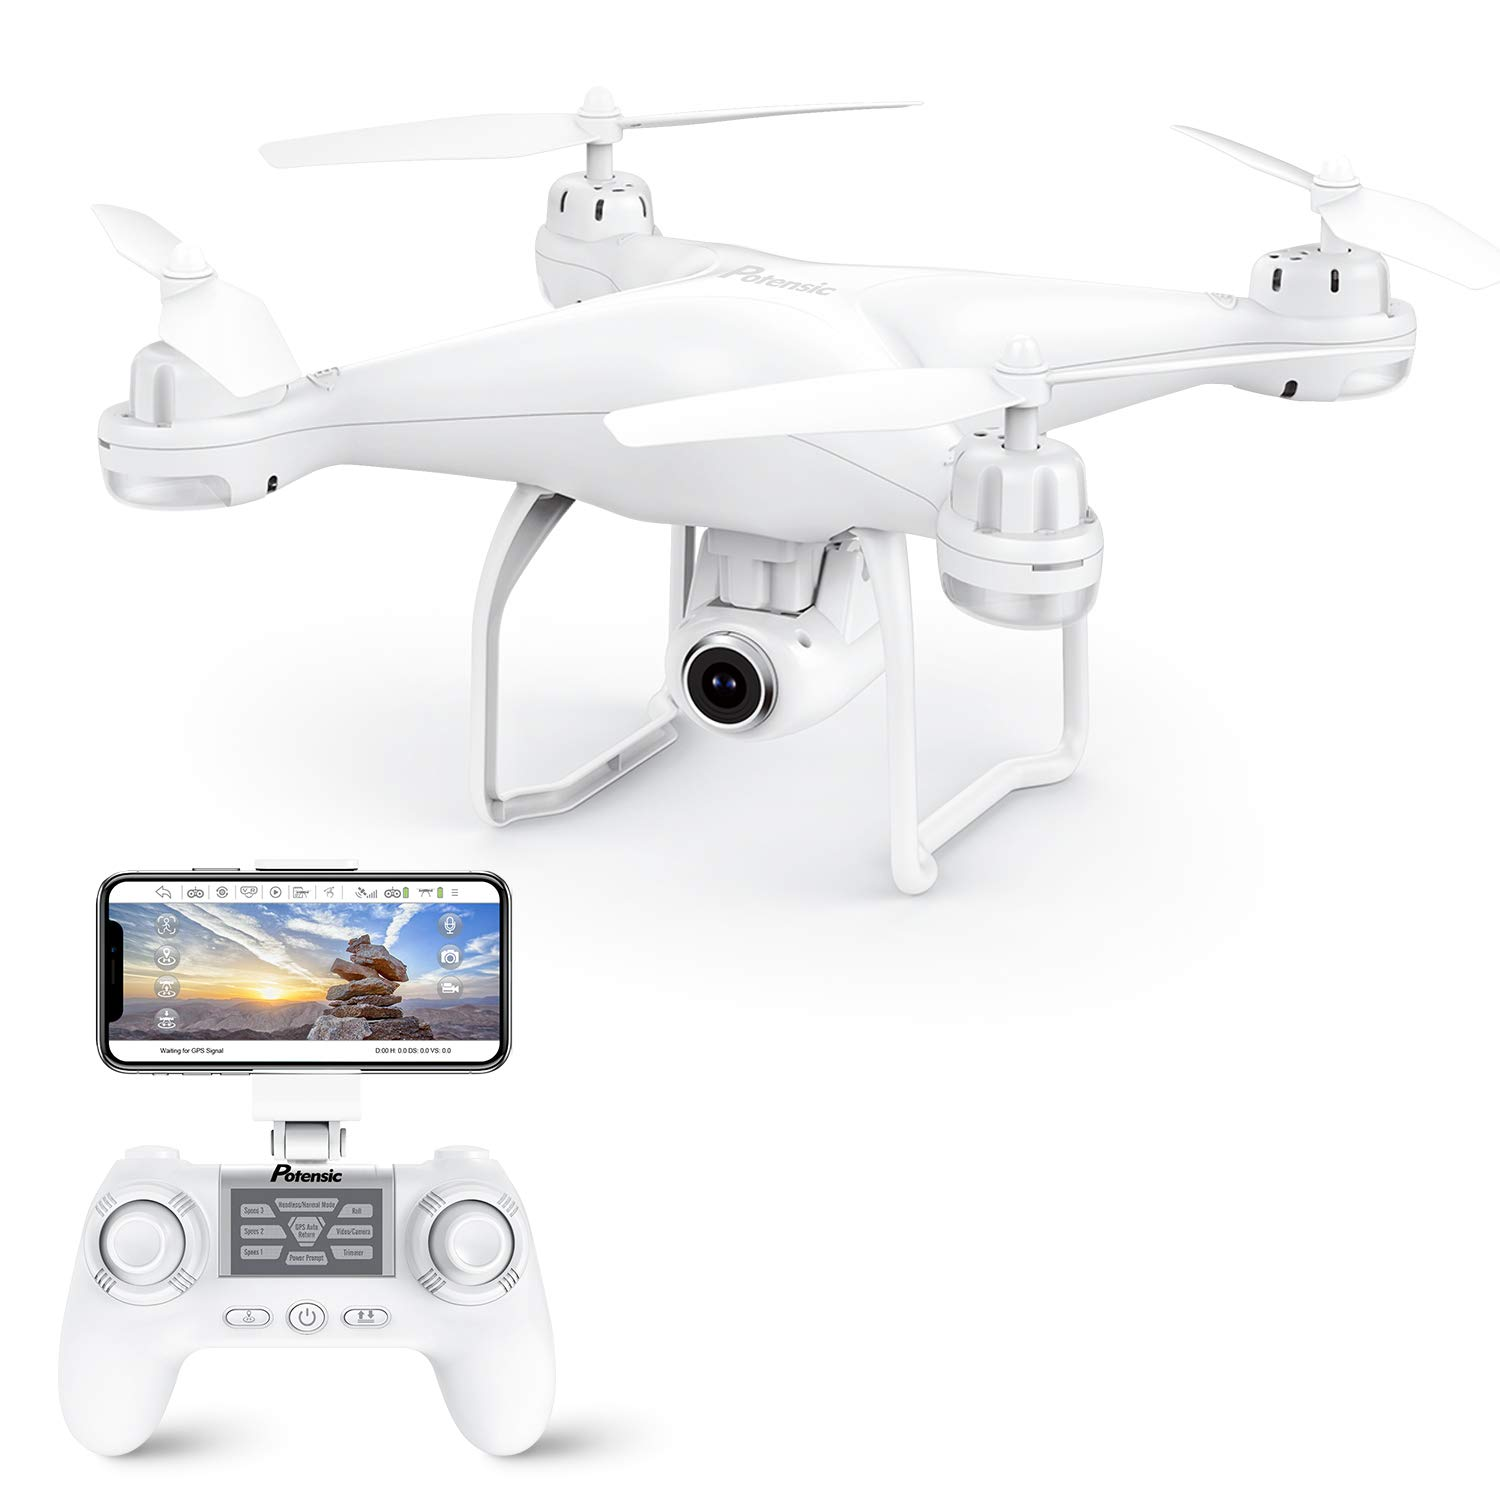 Potensic T25 GPS Drone, FPV RC Drone with Camera 1080P HD WiFi Live Video, Dual GPS Return Home, Quadcopter with Adjustable Wide-Angle Camera- Follow Me, Altitude Hold, Long Control Range, White by Potensic